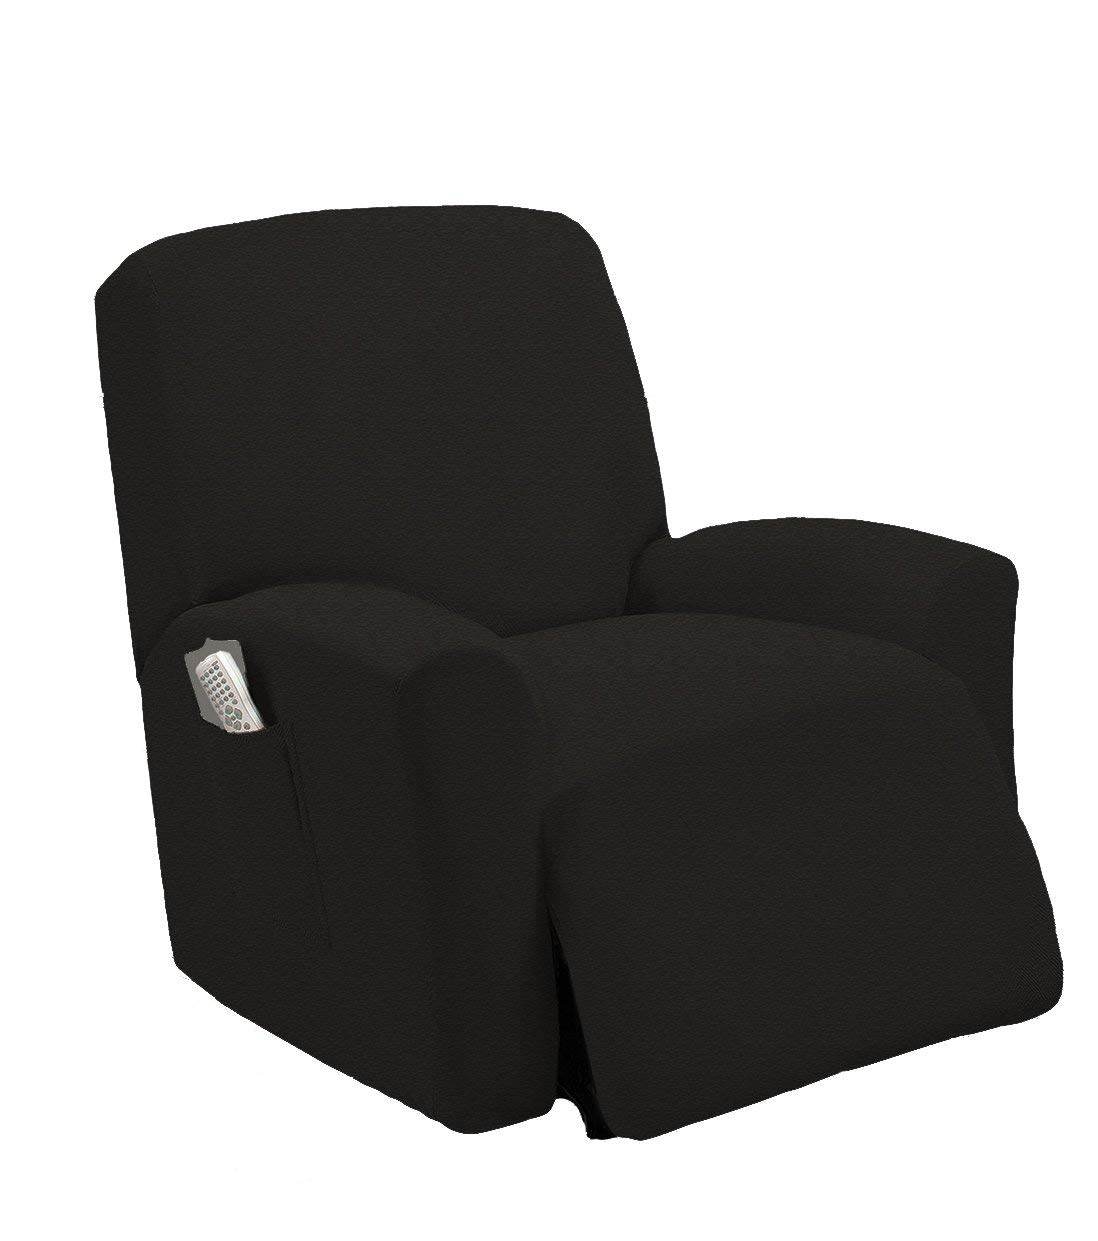 One Piece Stretch Chair Cover